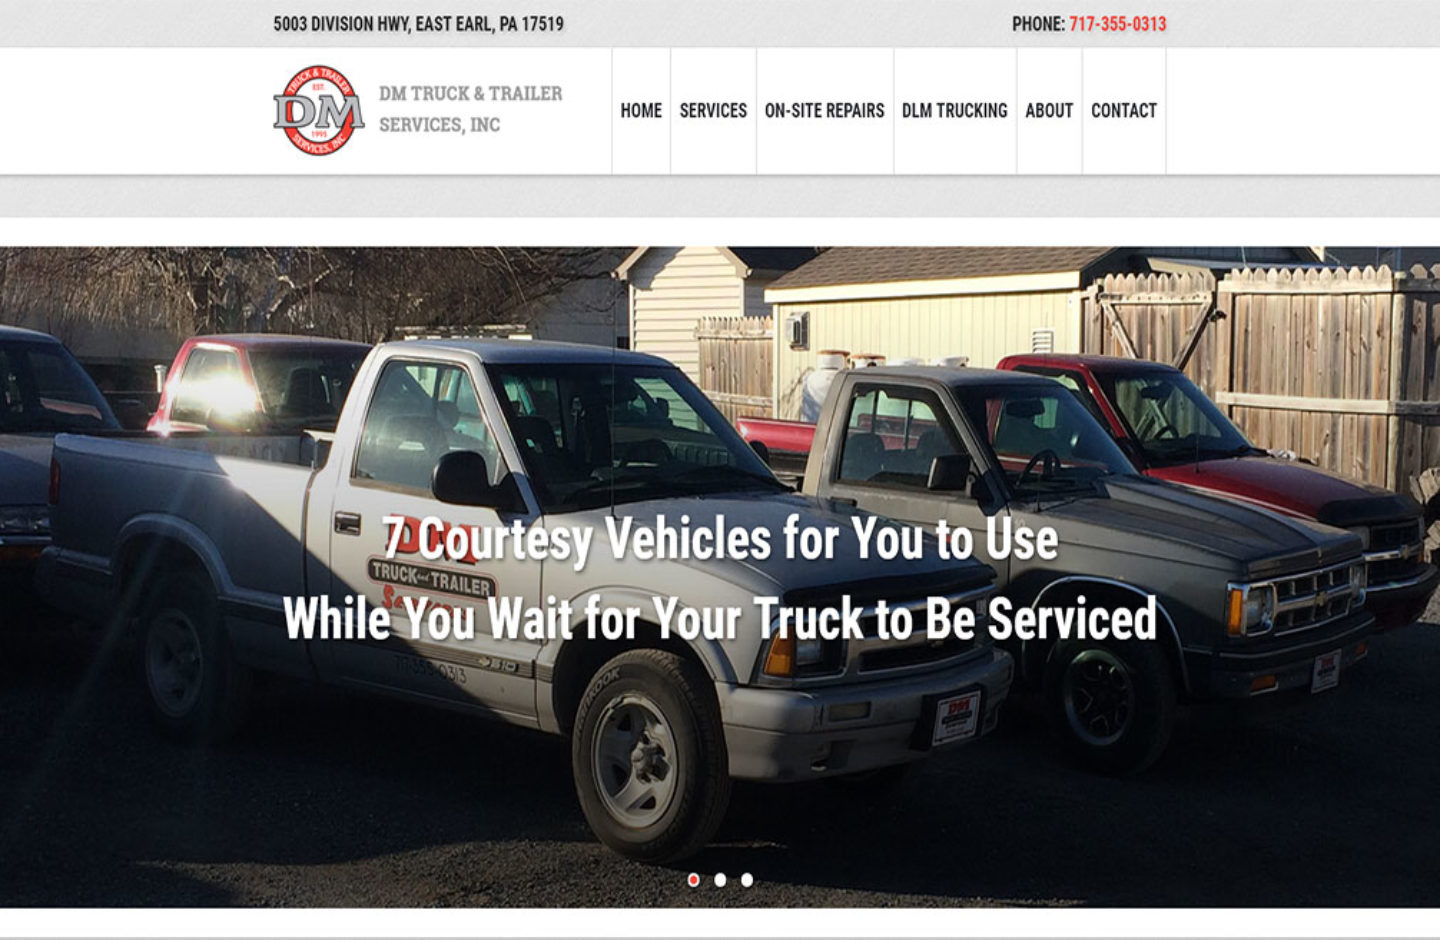 DM Truck  Trailer Services